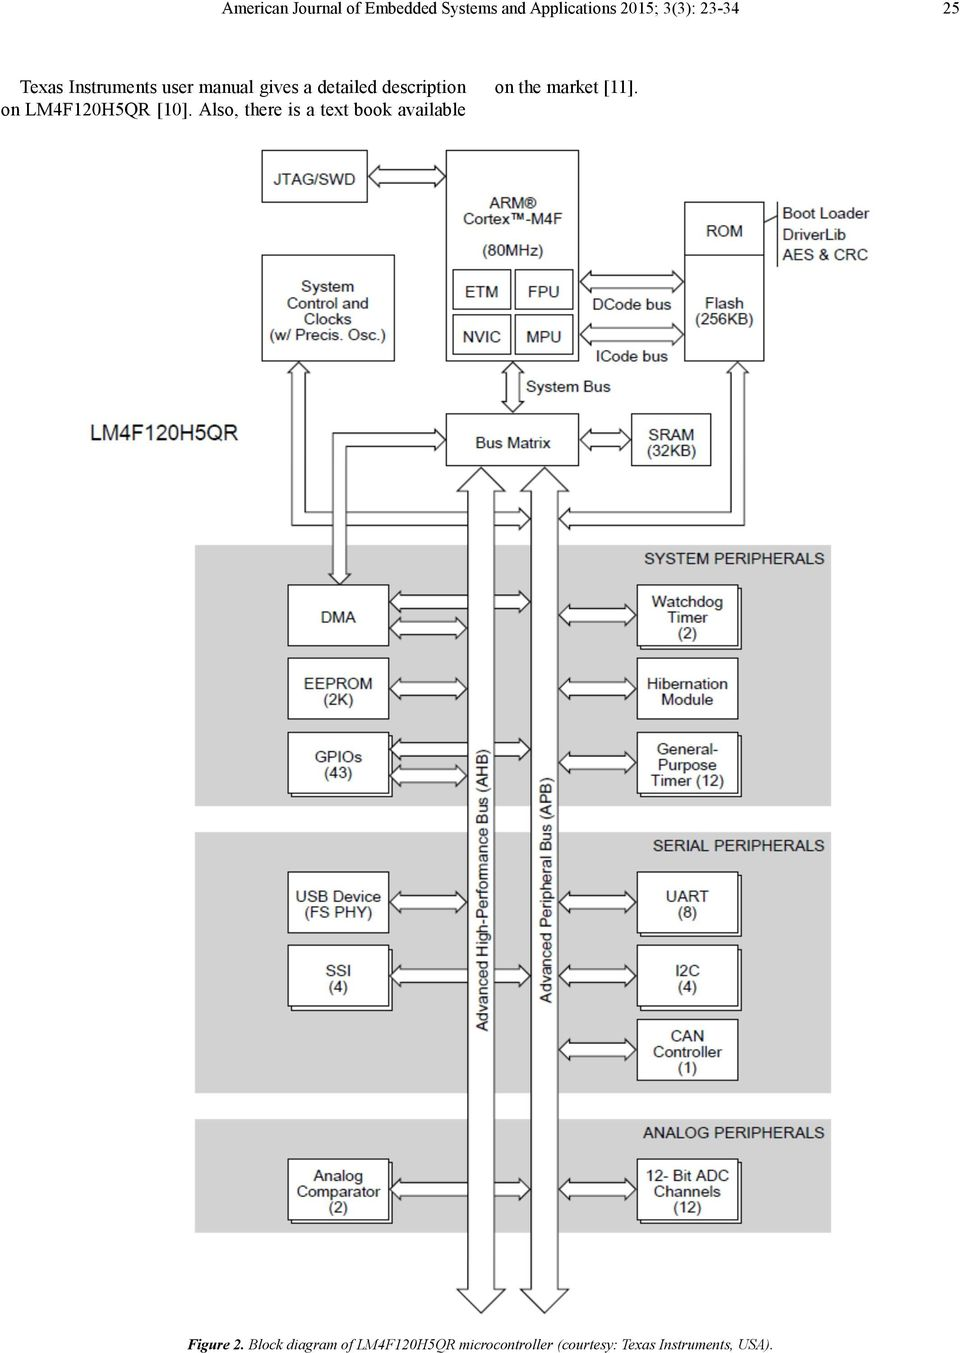 Fast Track Exercises To Understand Arm Cortex M4 Architecture Using Adc Hardware Block Diagram Embedded Lab 10 Also There Is A Text Book Available On The Market